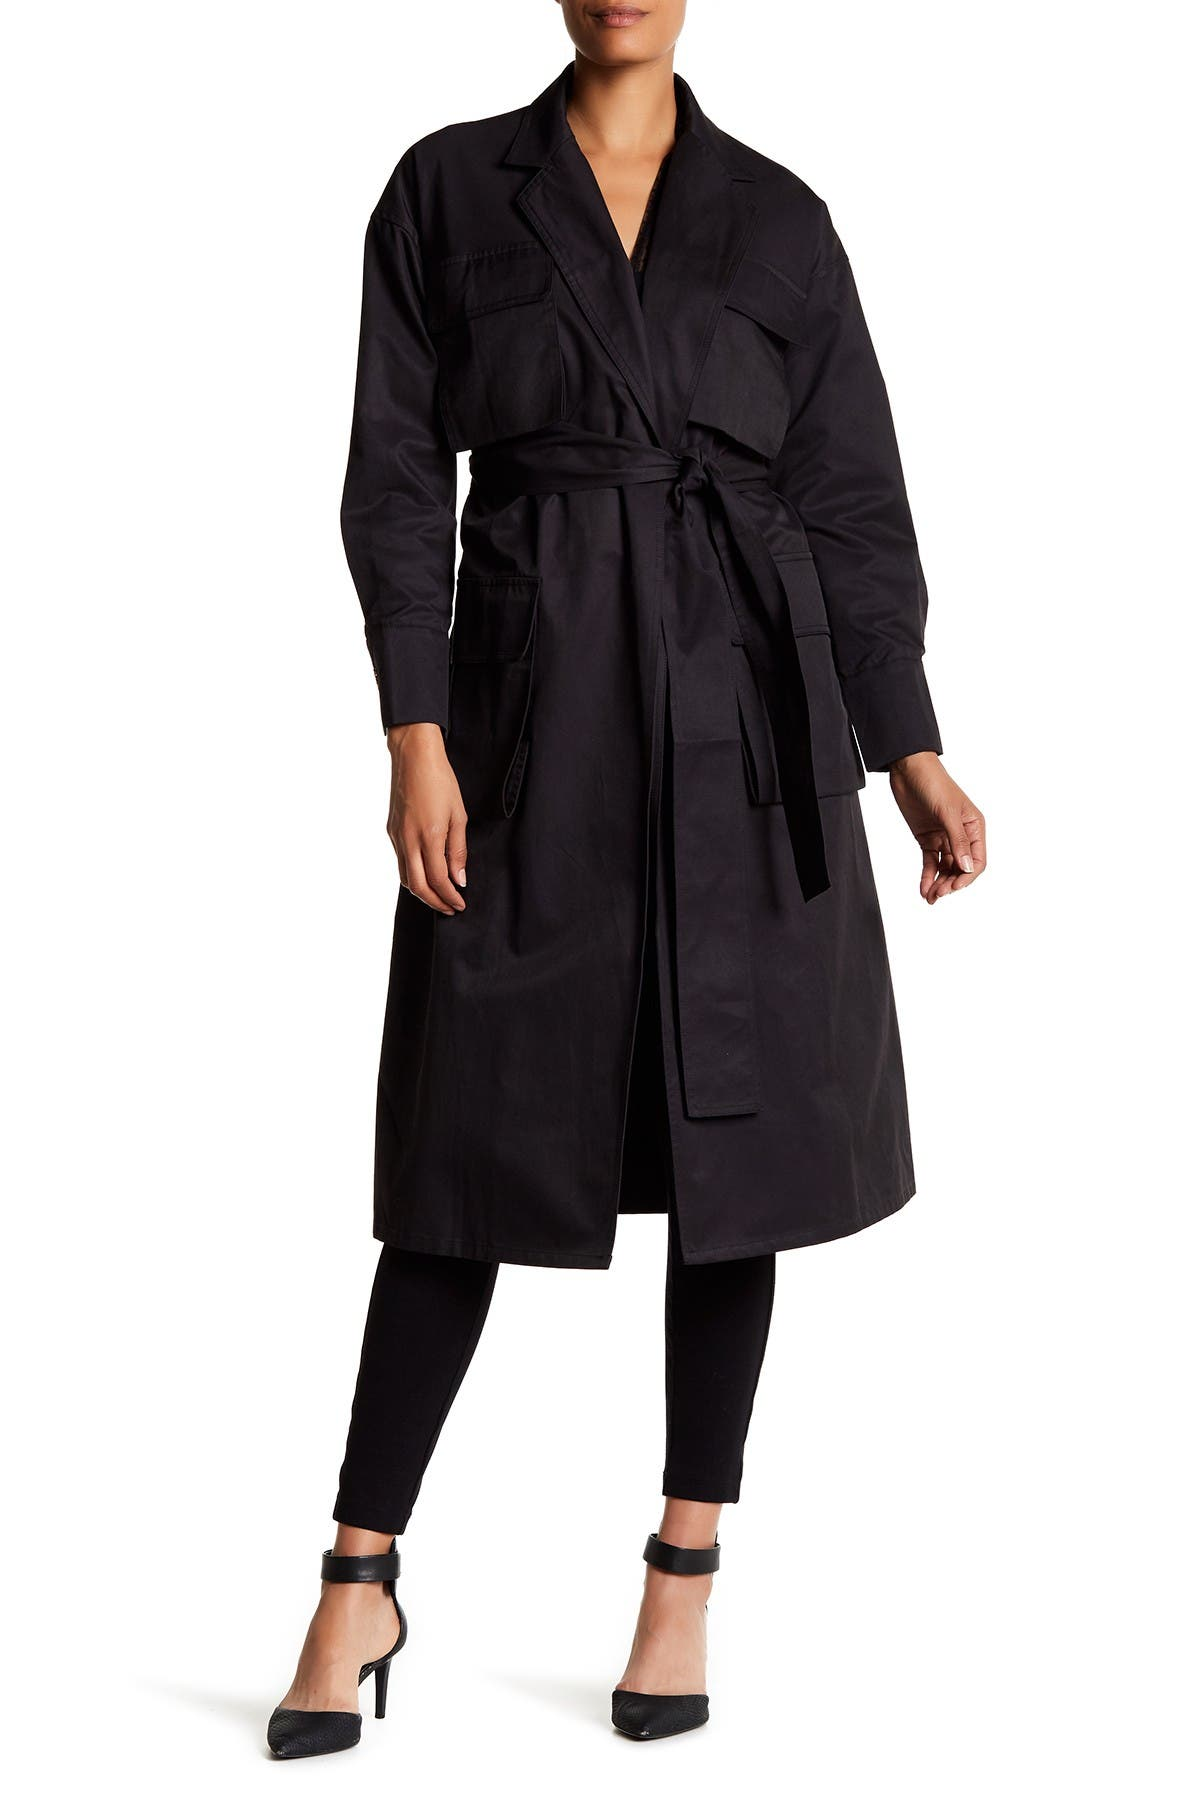 Image of TOV Flap Pocket Trench Coat